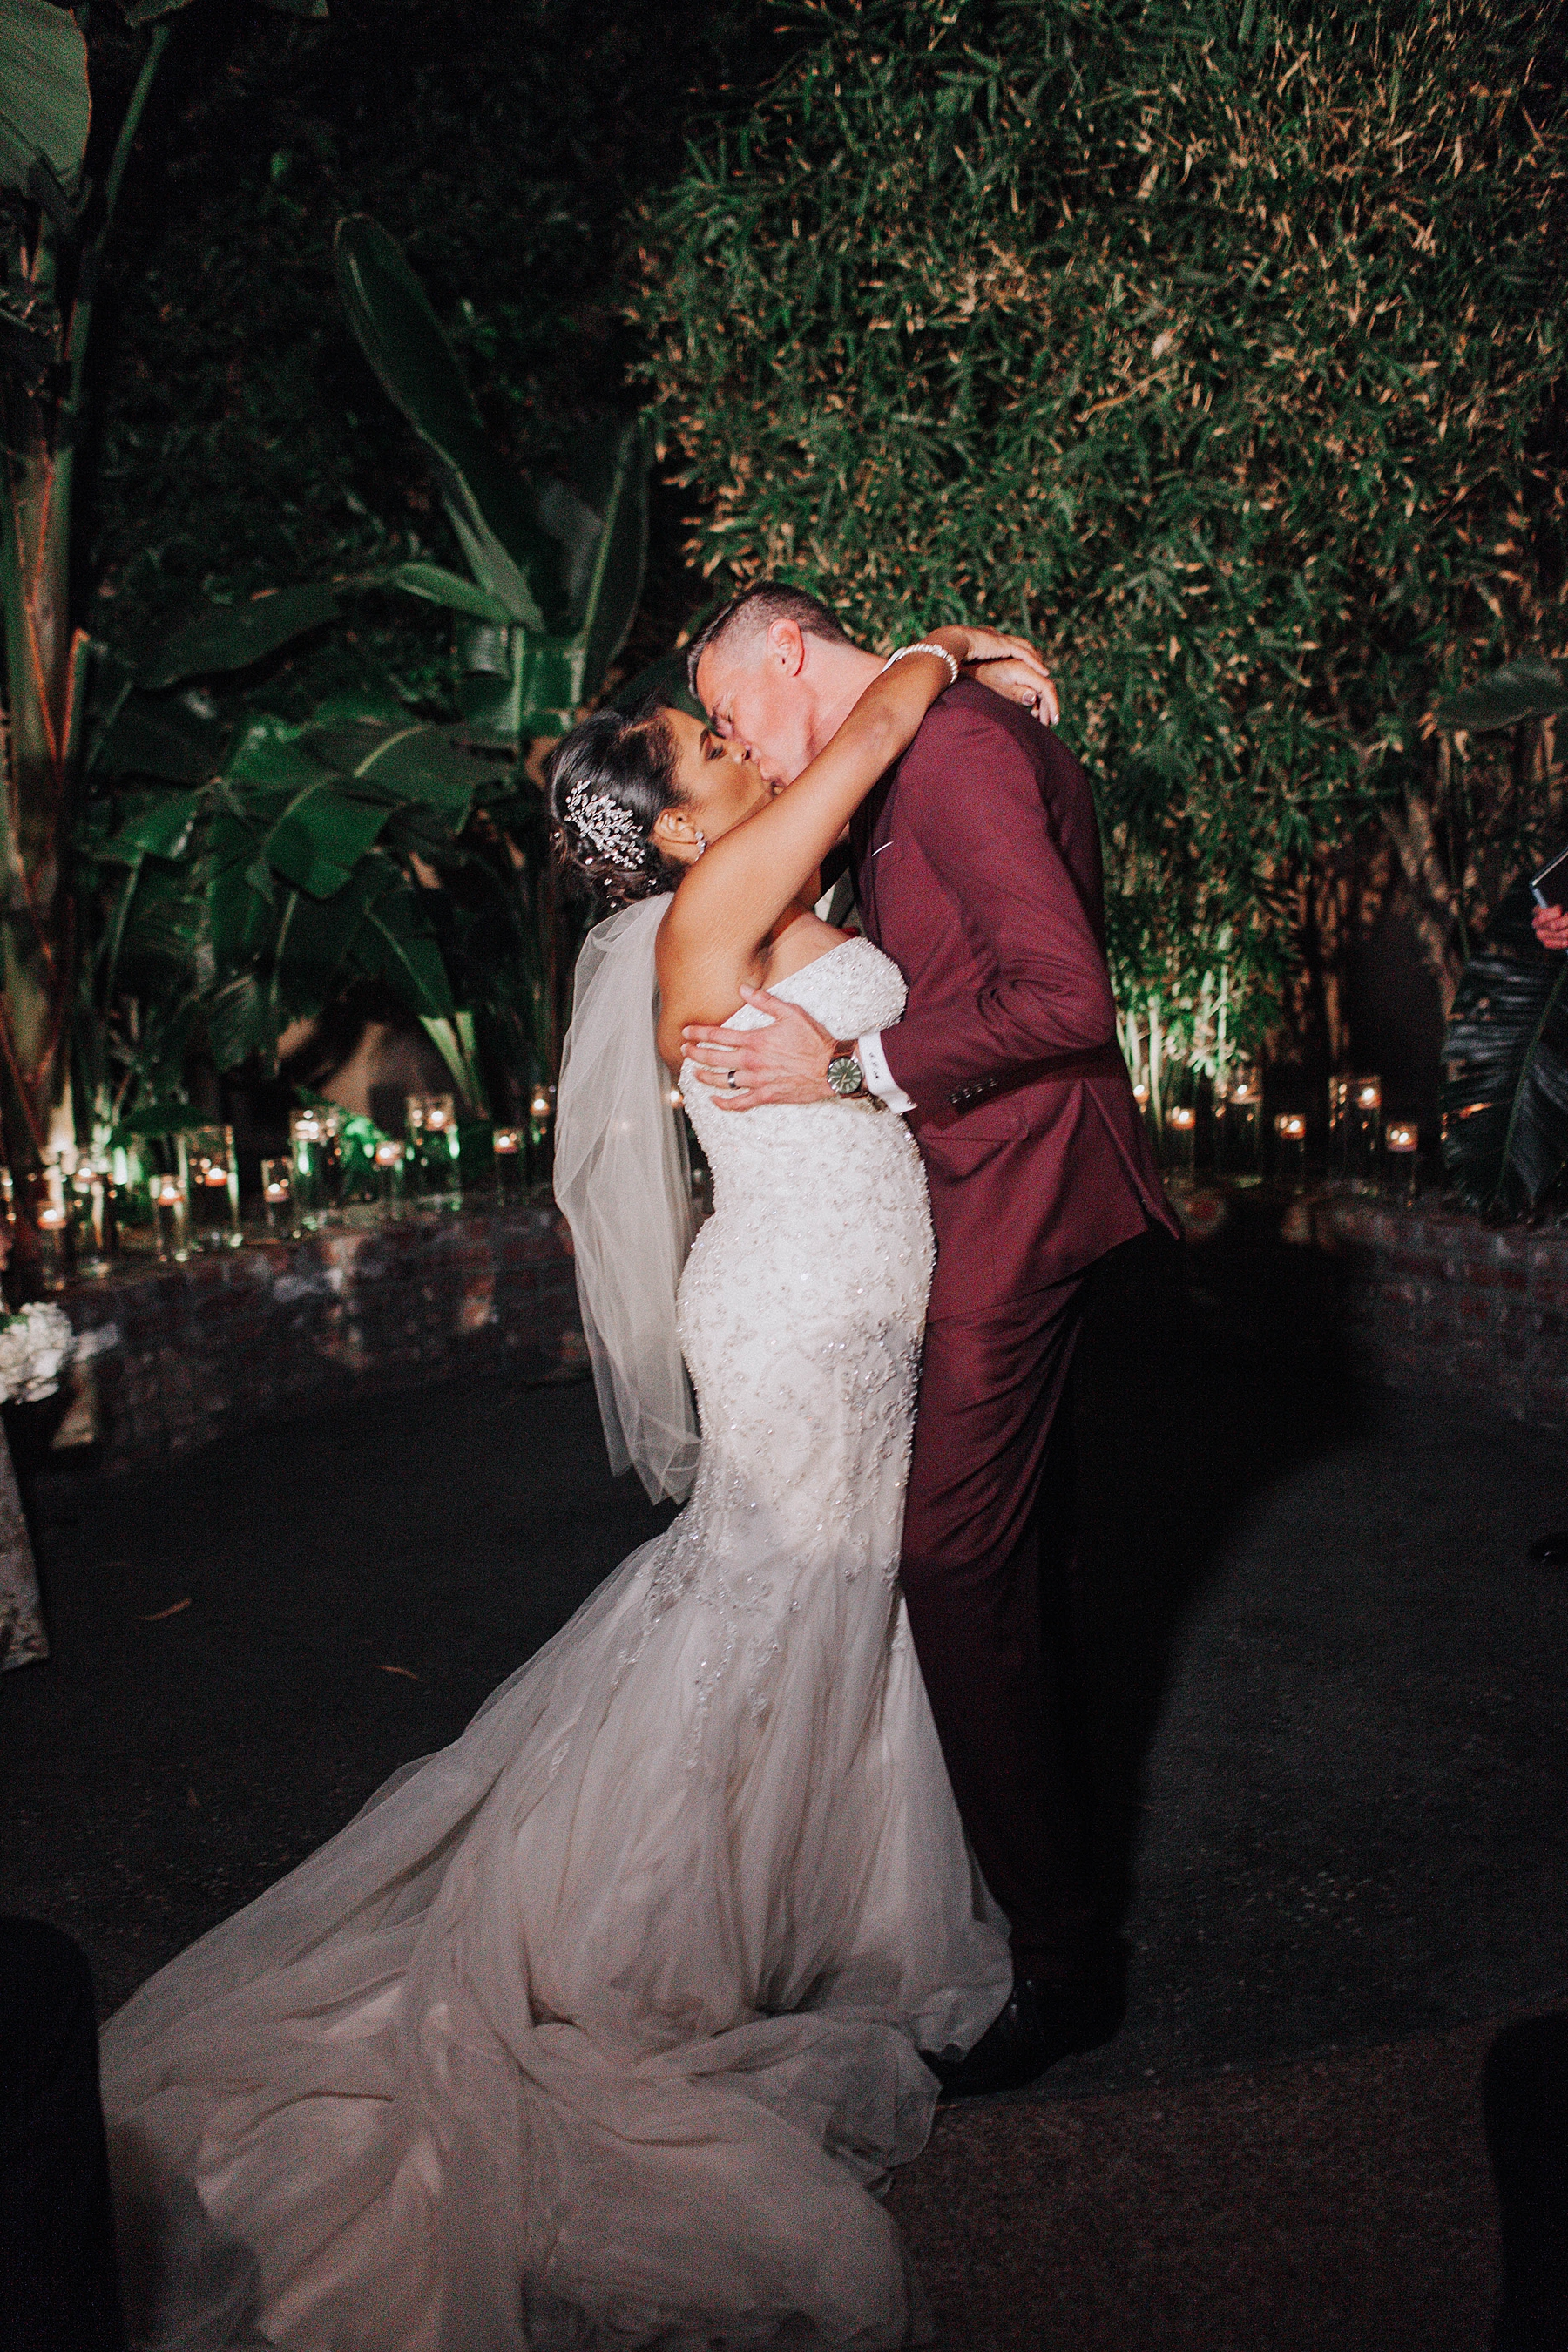 Bride and Groom after Ceremony, Millwick Downtown Los Angeles